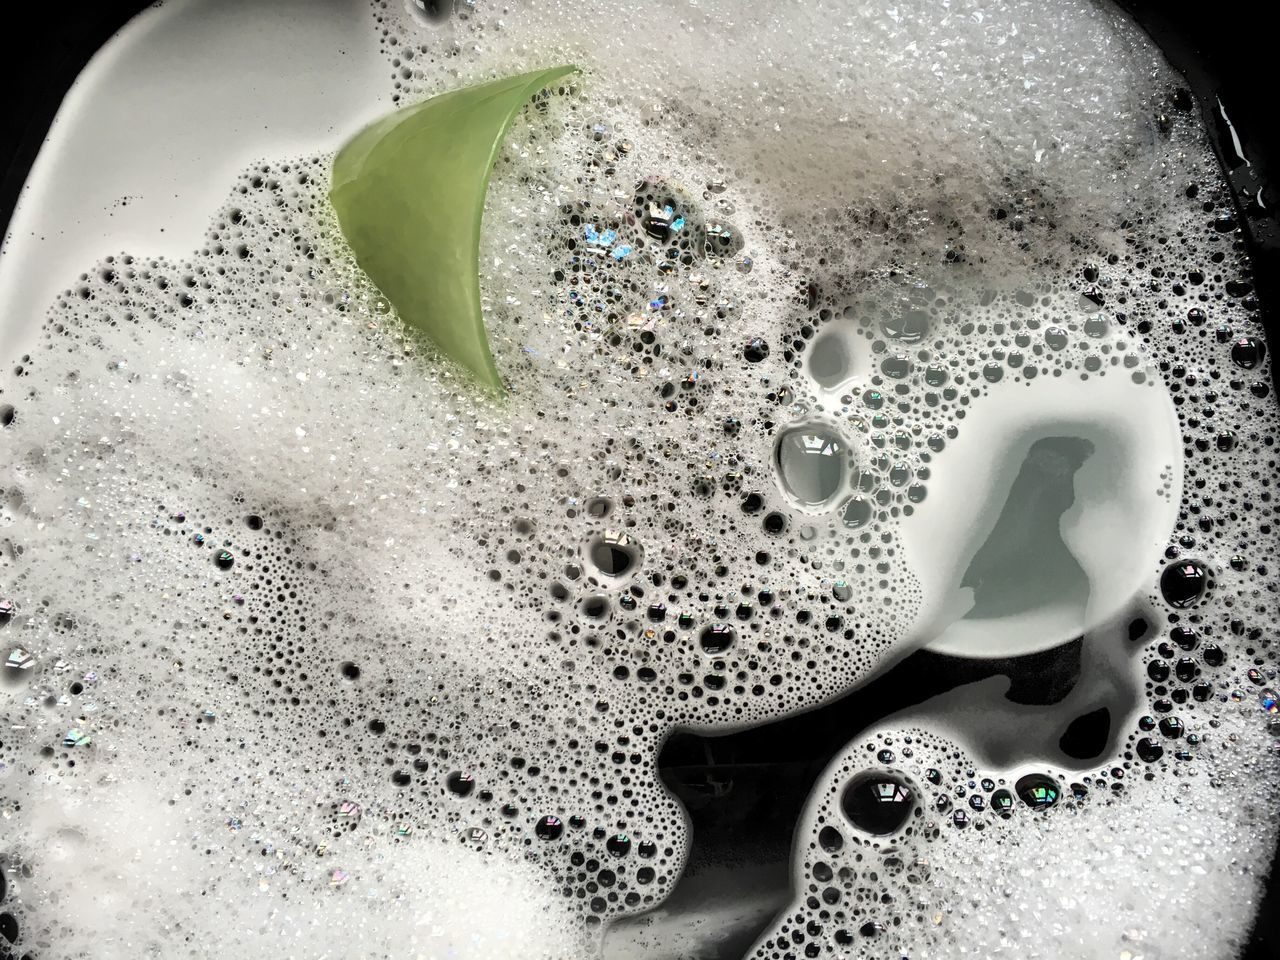 Water Washing Up Bowl Washing Up The Dishes Soap Soap Bubbles Soap Suds